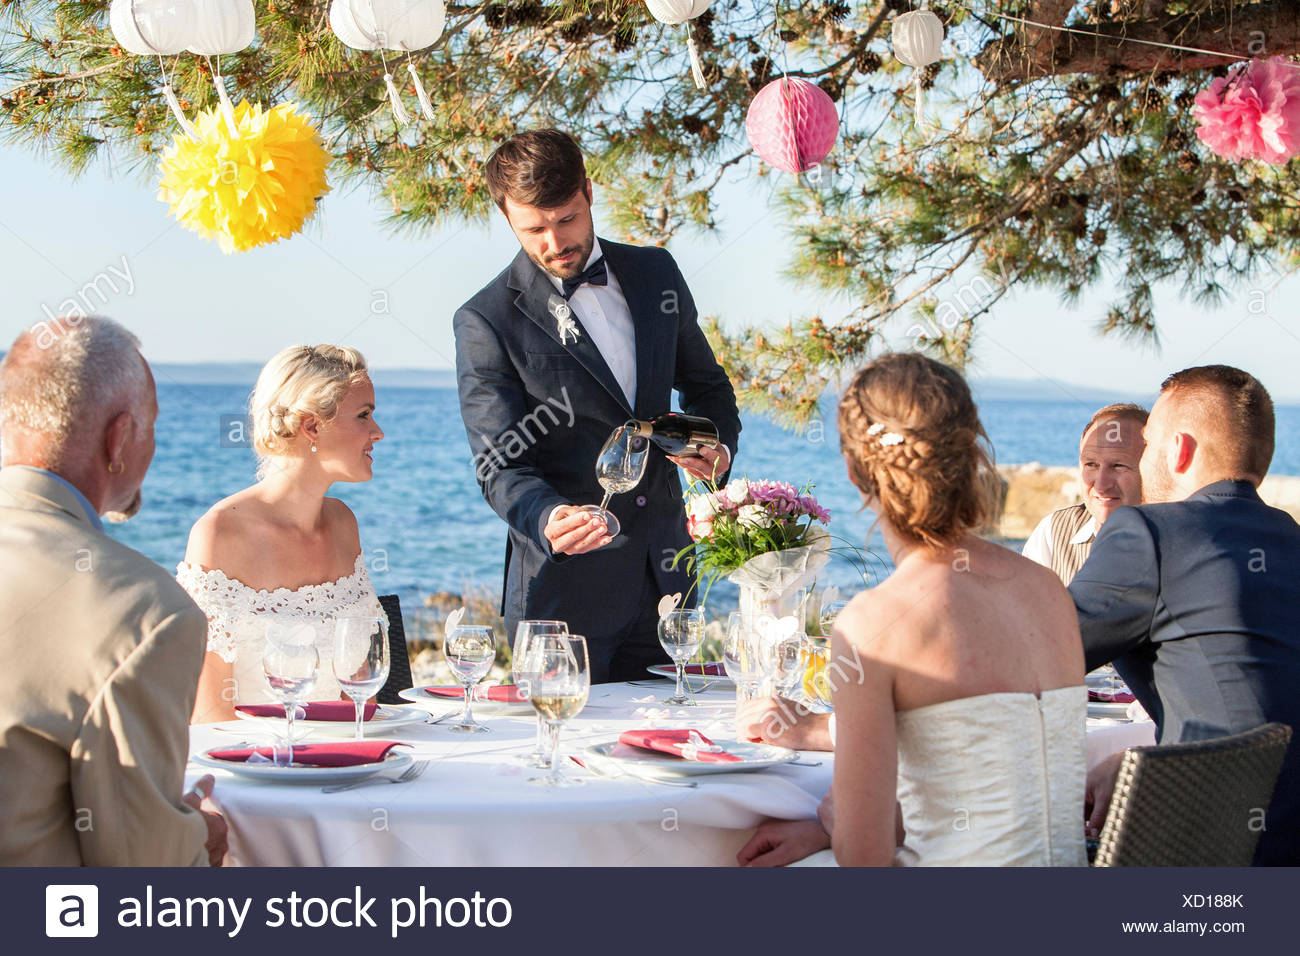 Wedding party on the beach - Stock Image